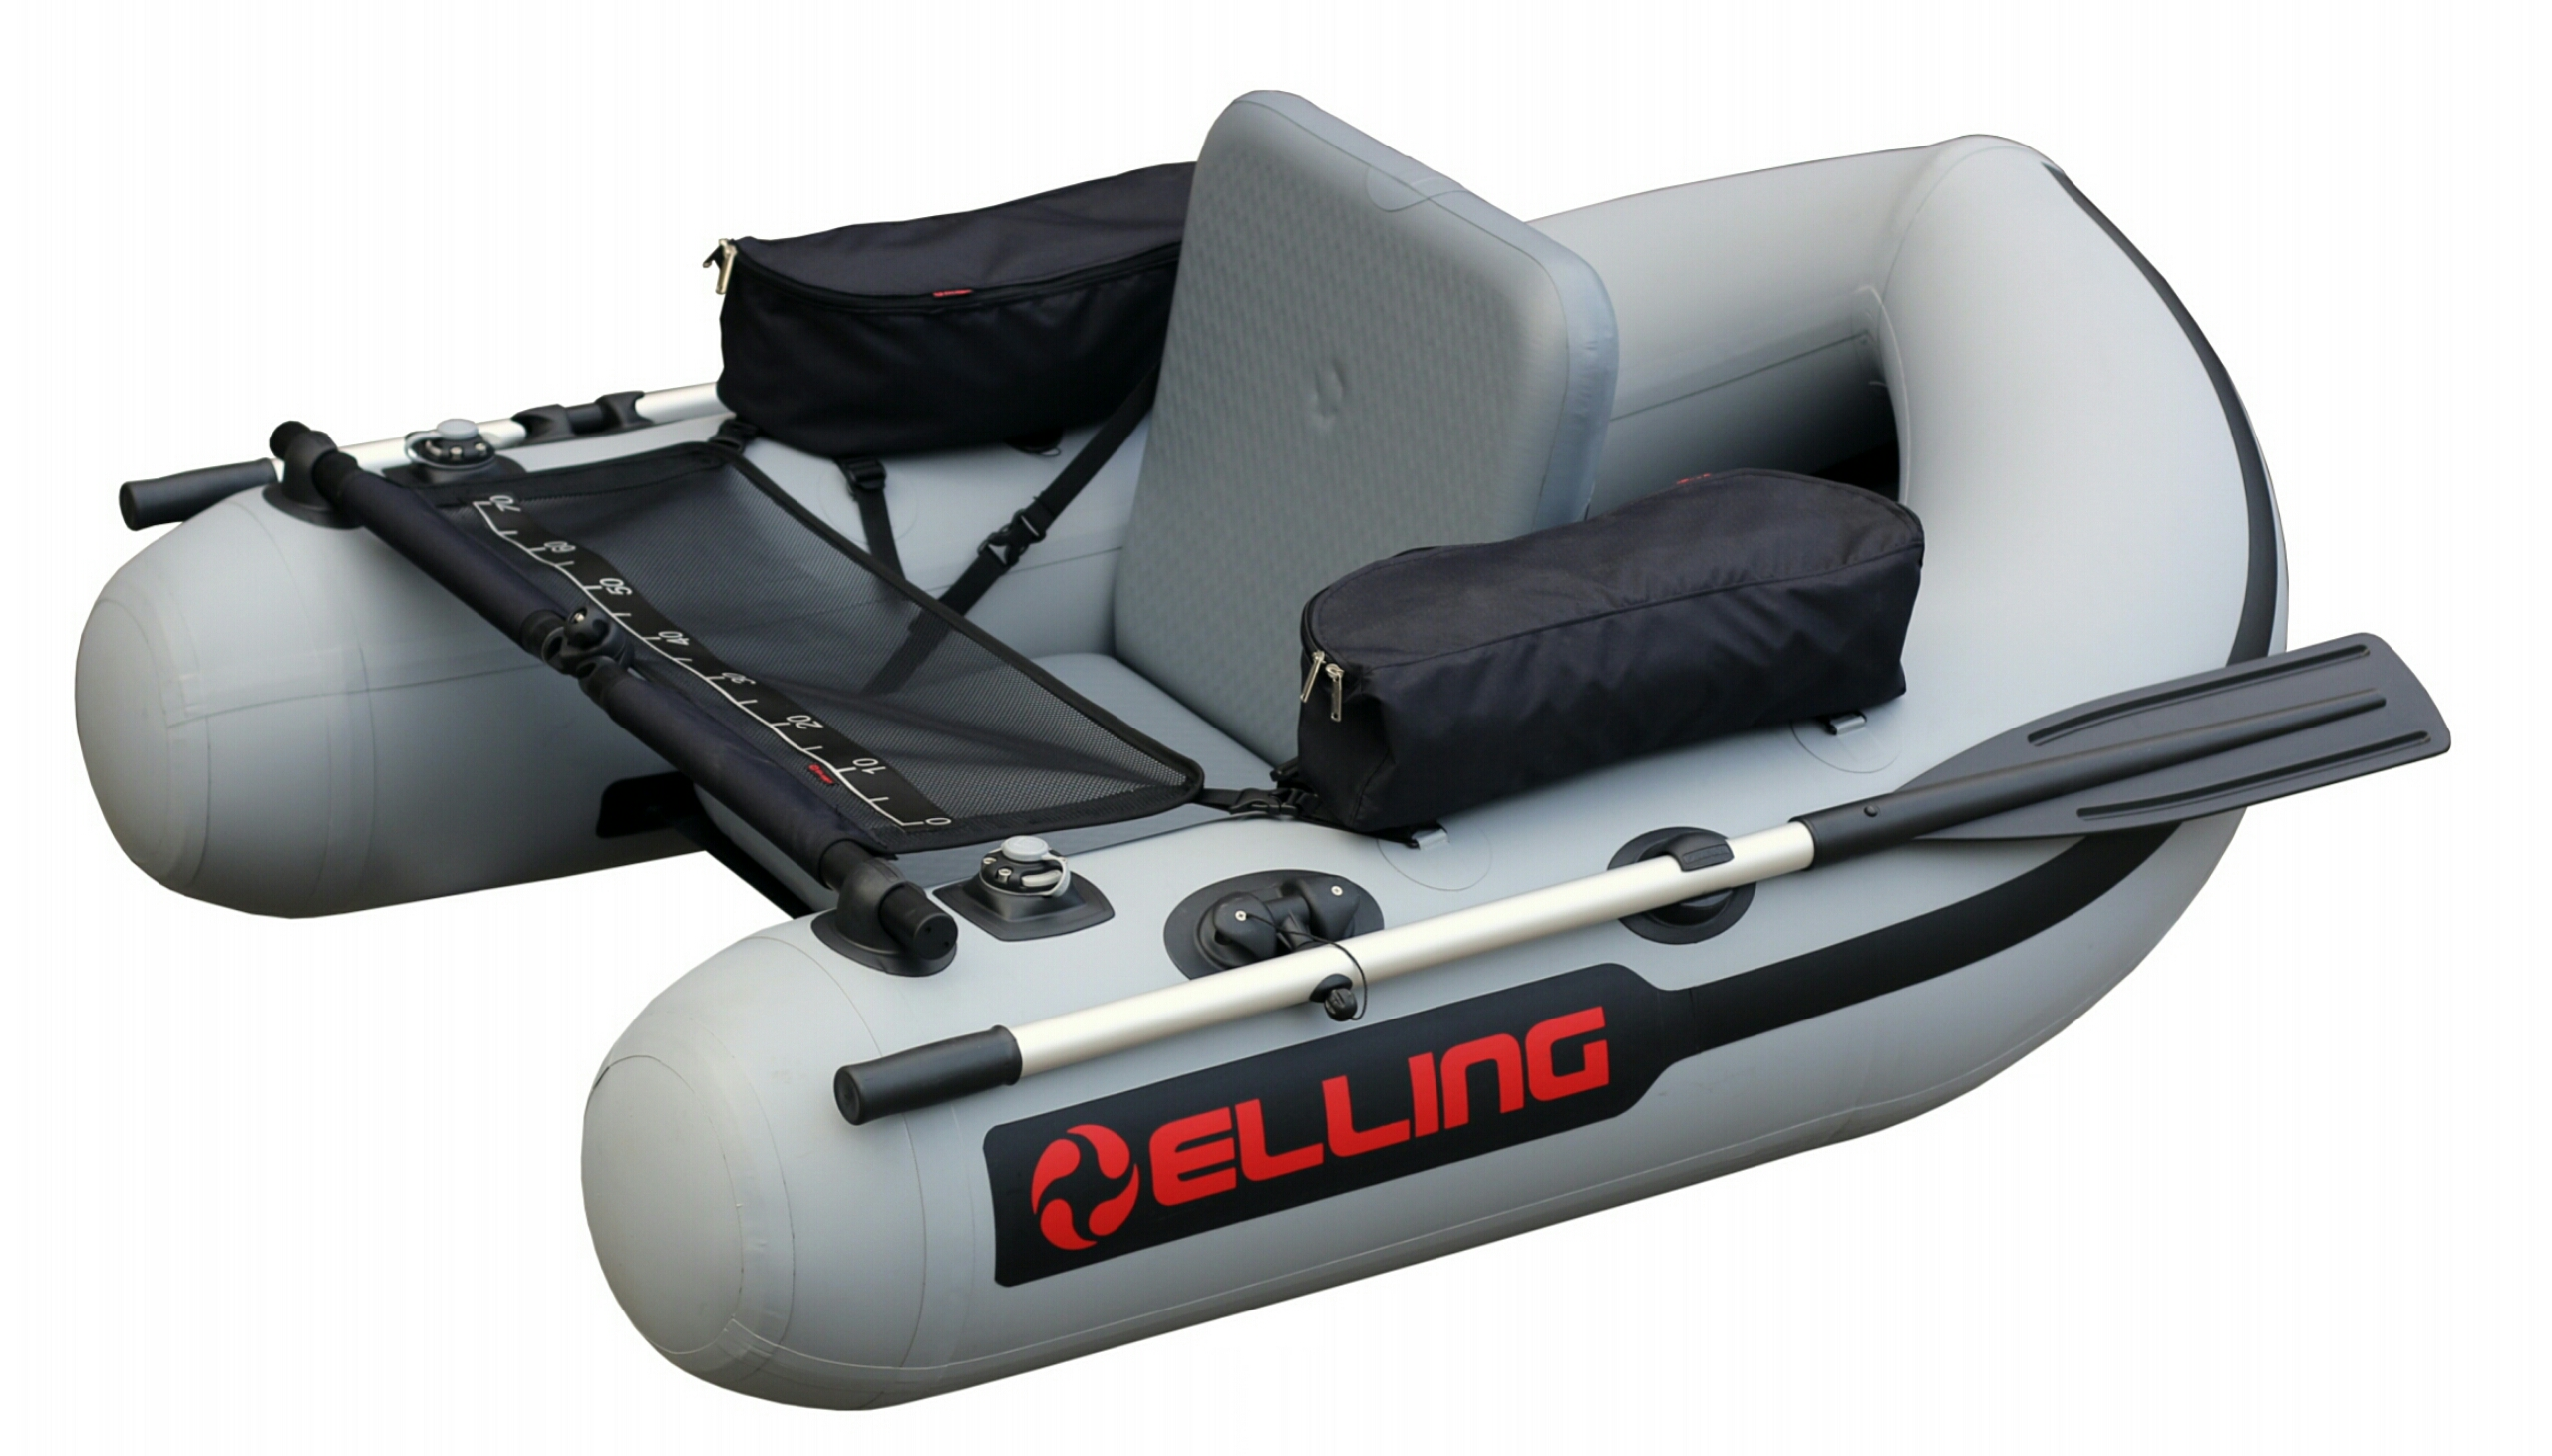 Belly boat